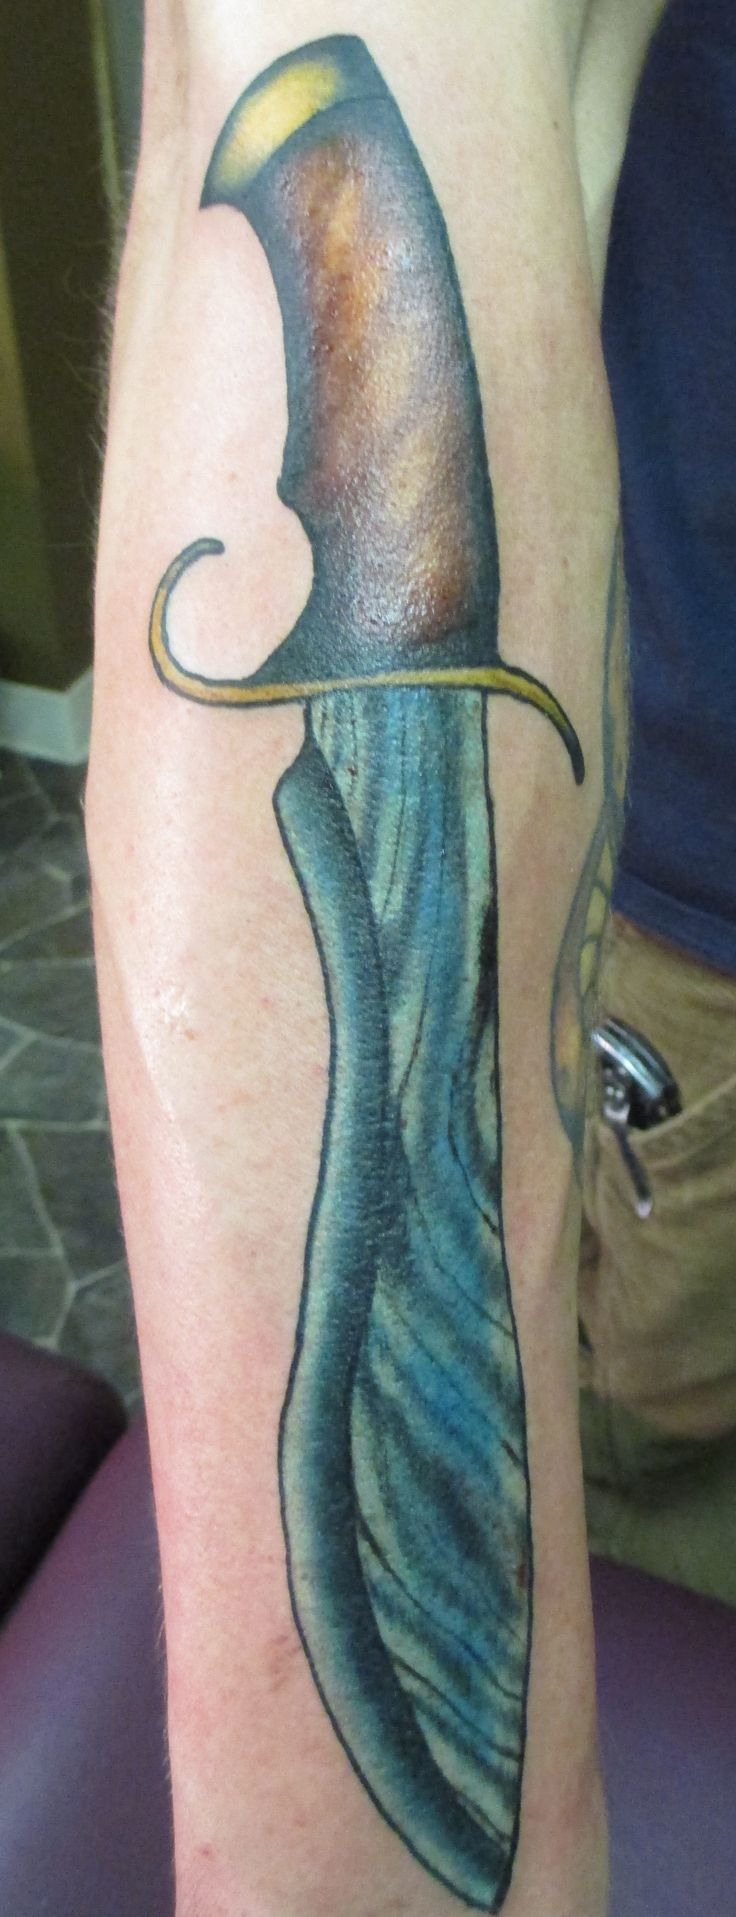 bowie knife tattoo